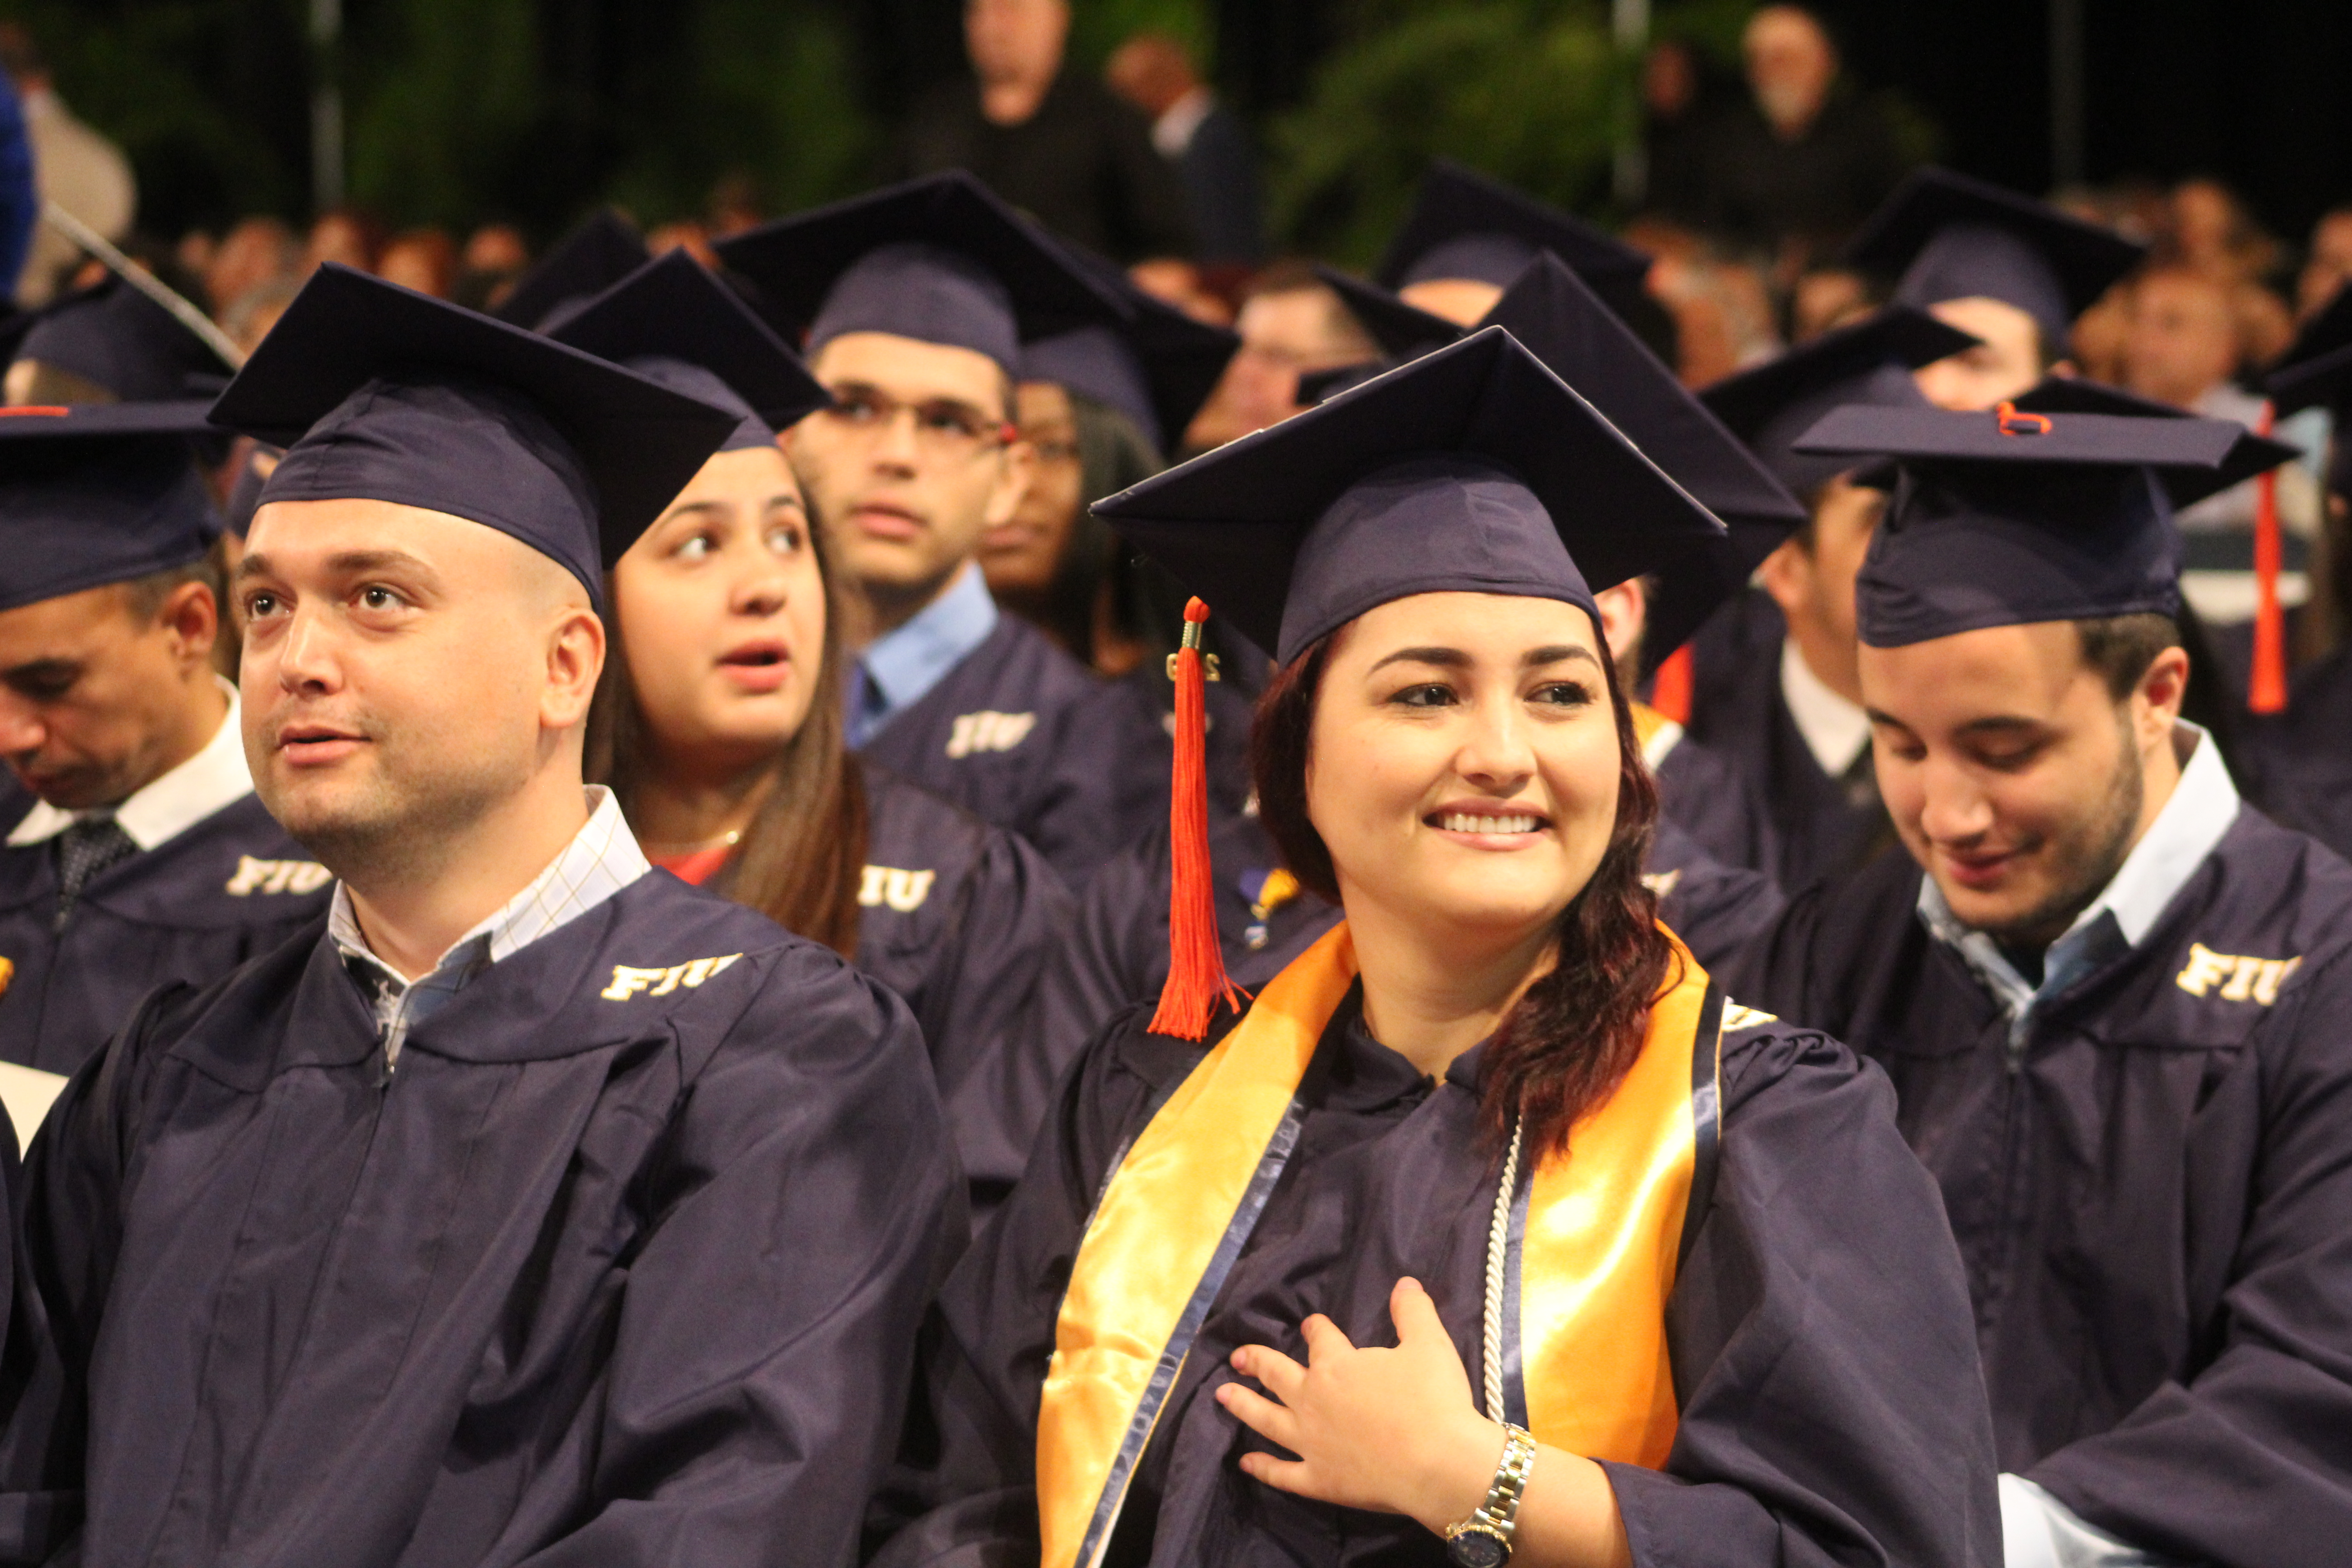 MME bids farewell to over 100 graduating seniors at the Spring 2019 Commencement